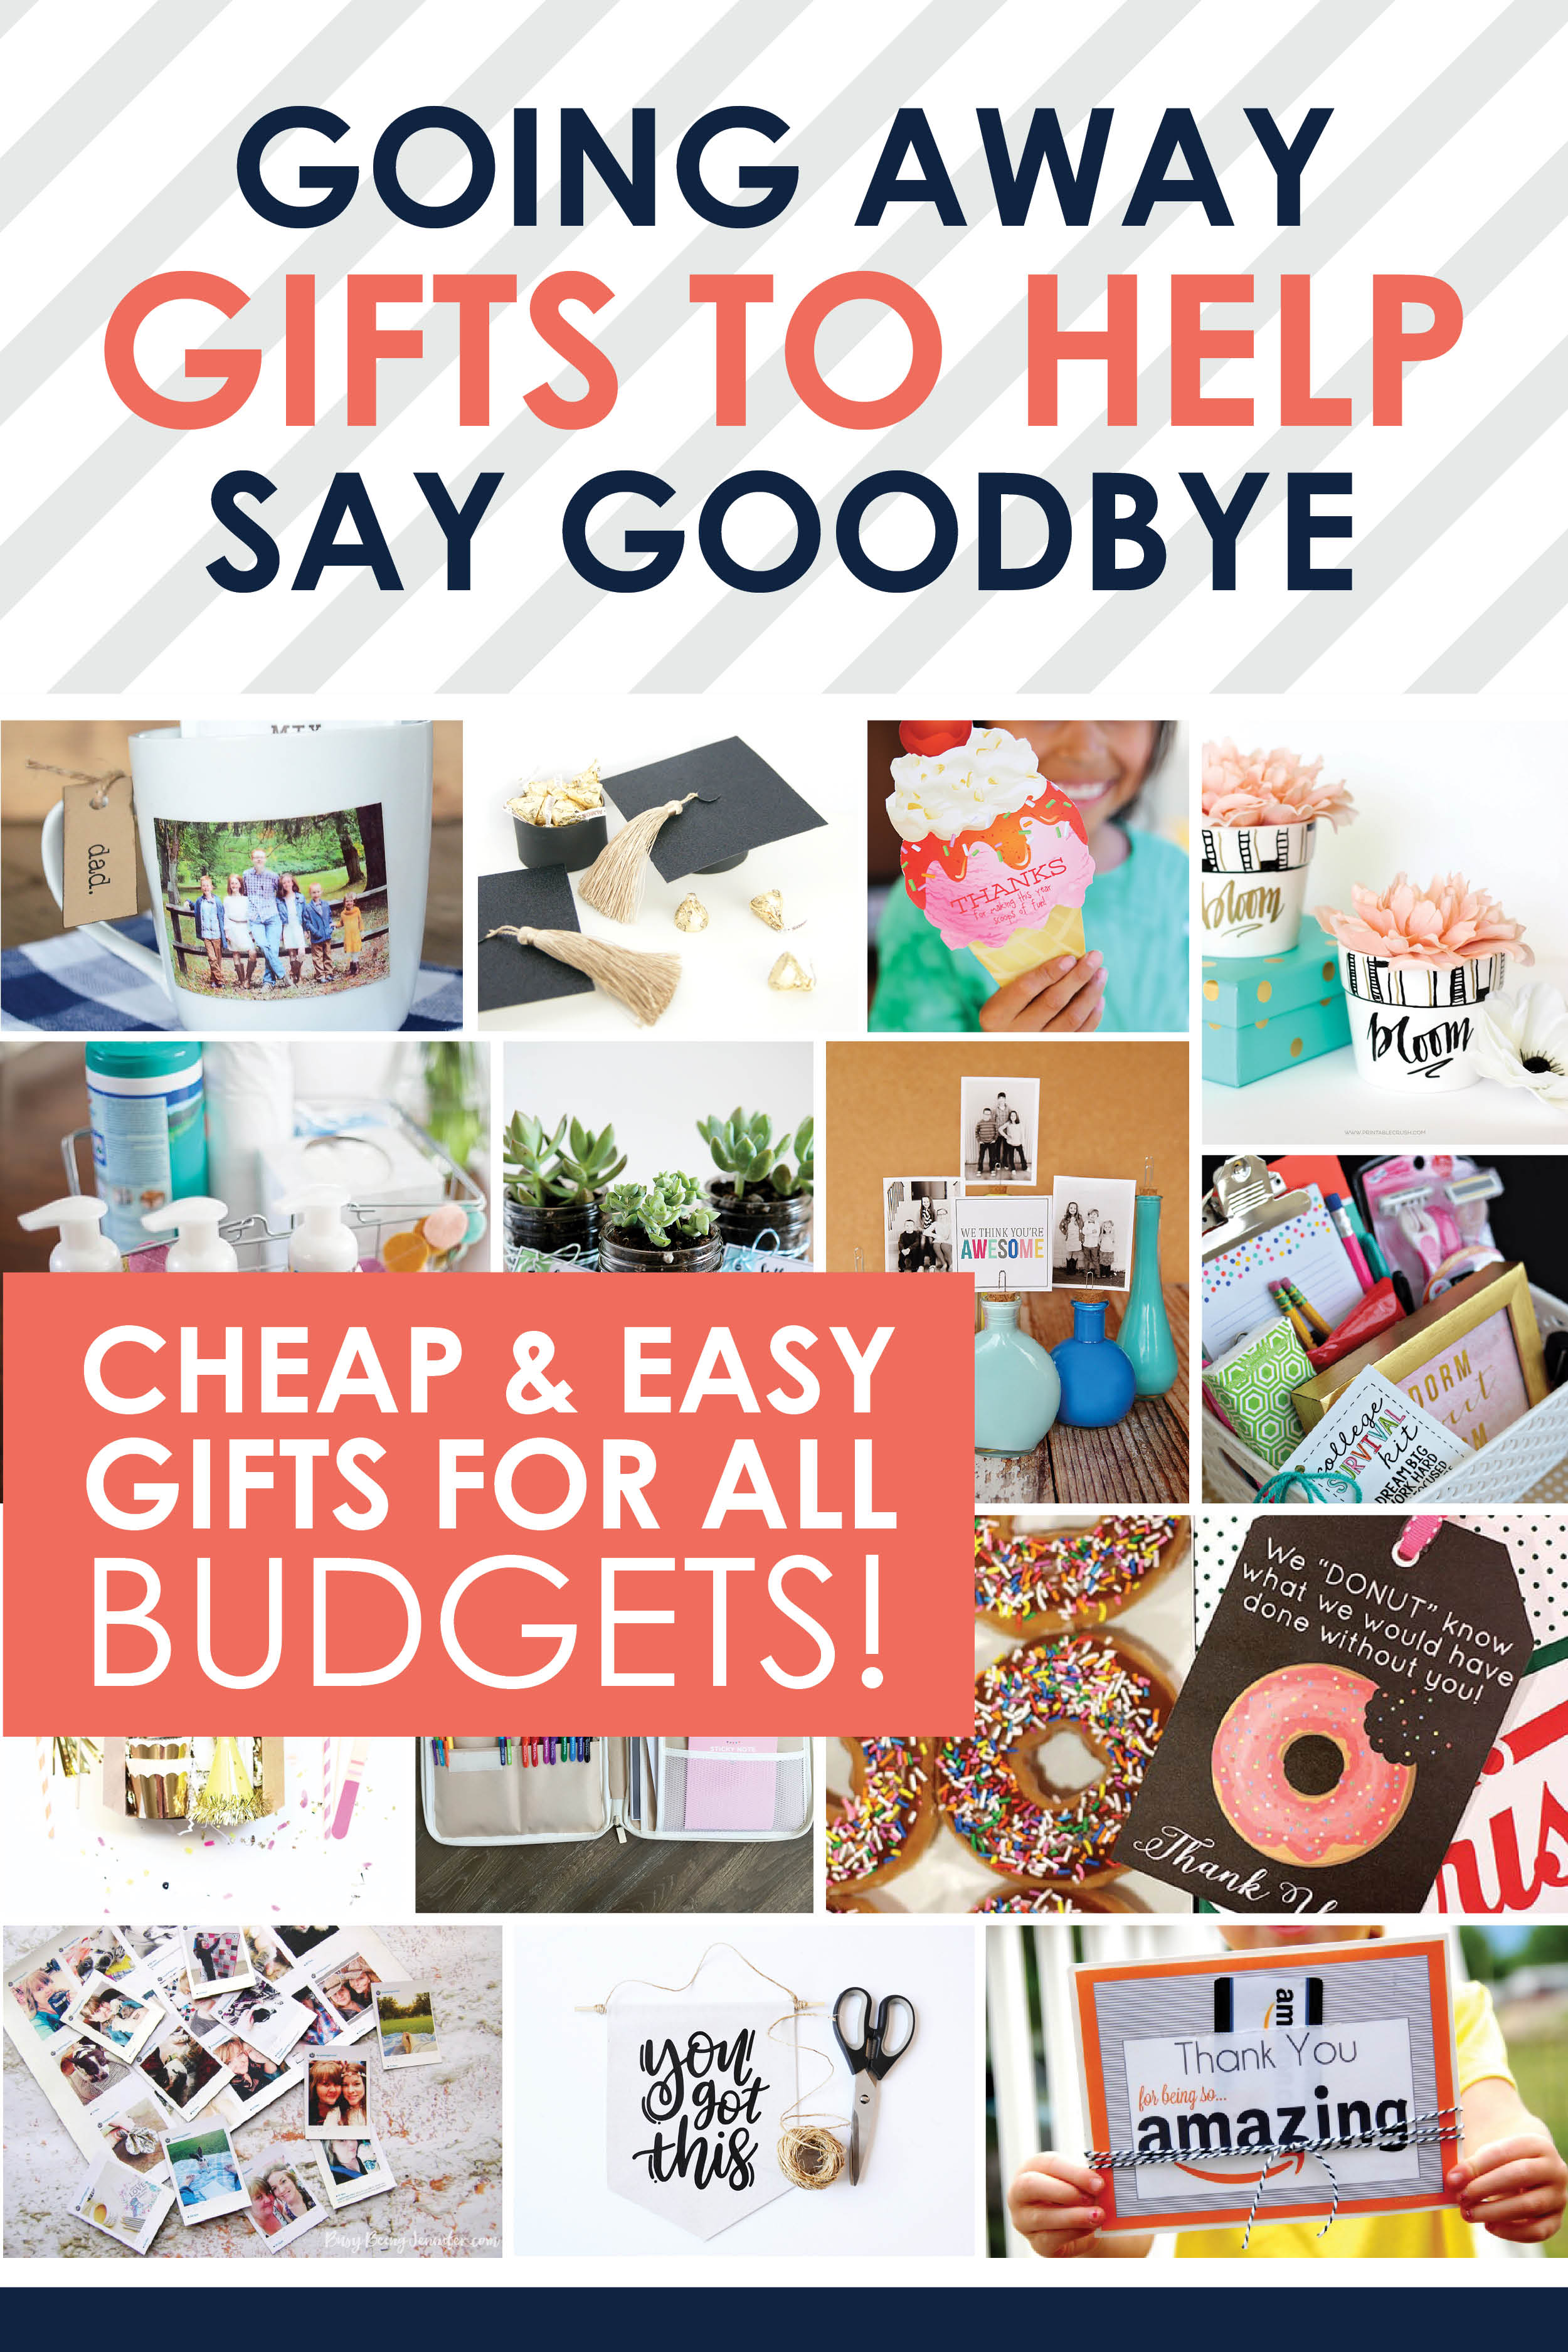 Aww I love these ideas!! The best inexpensive, quick and easy going away gifts to say goodbye to anyone! #GoingAwayGifts #GoodbyeGifts #TheDatingDivas